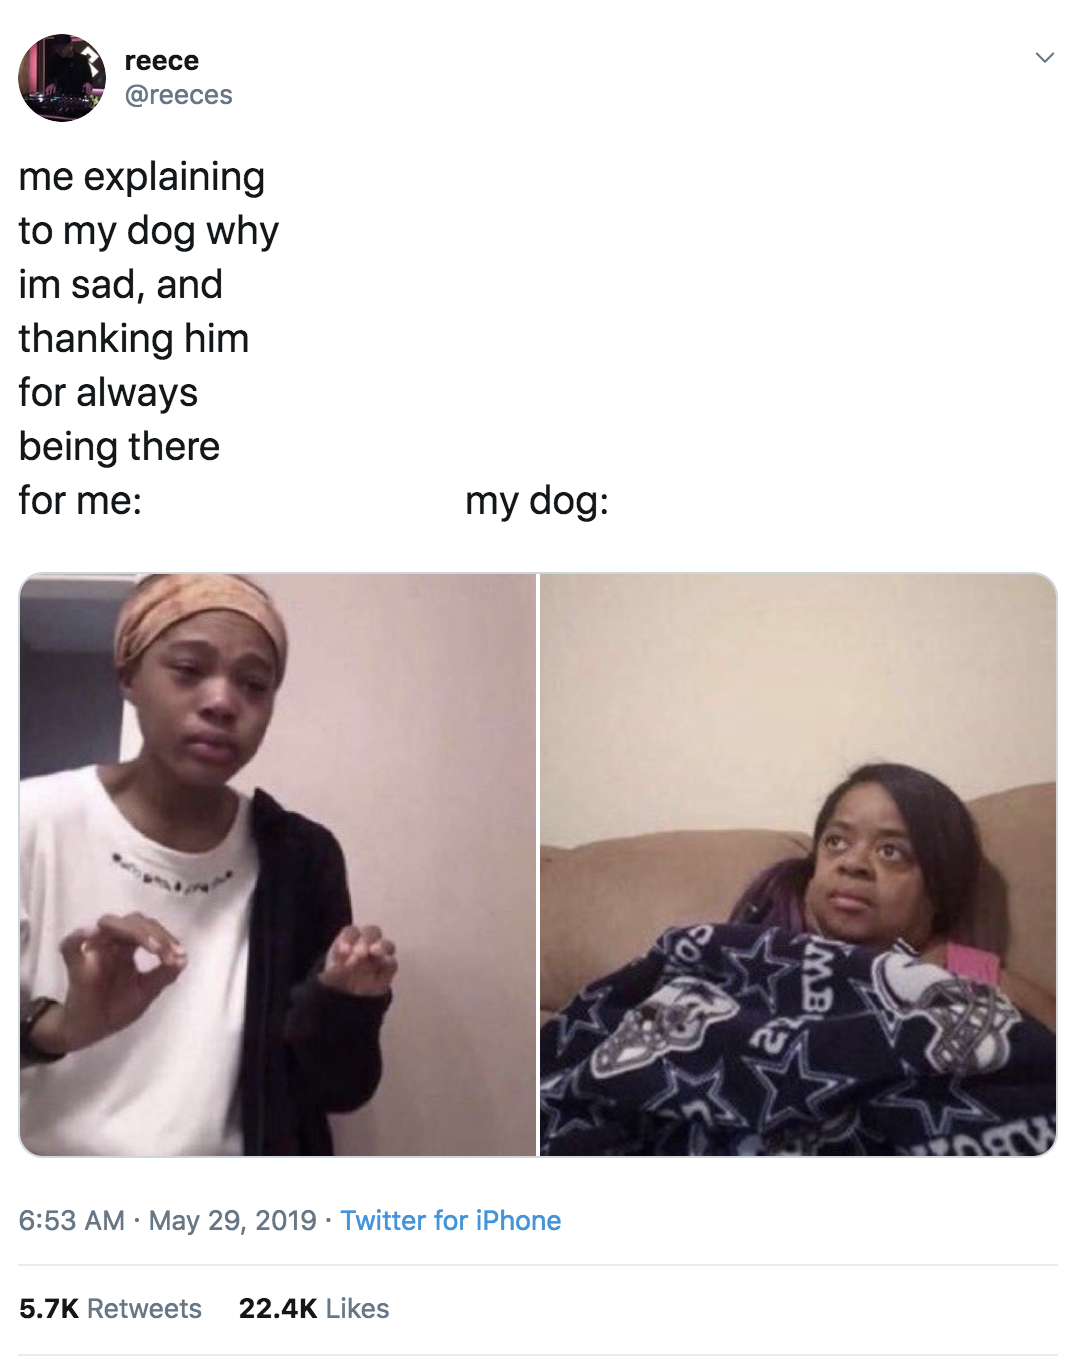 The Me Explaining Meme Is The Funniest Meme I Ve Seen In A Loooooong Time Really Funny Funny Relatable Memes Funny Memes